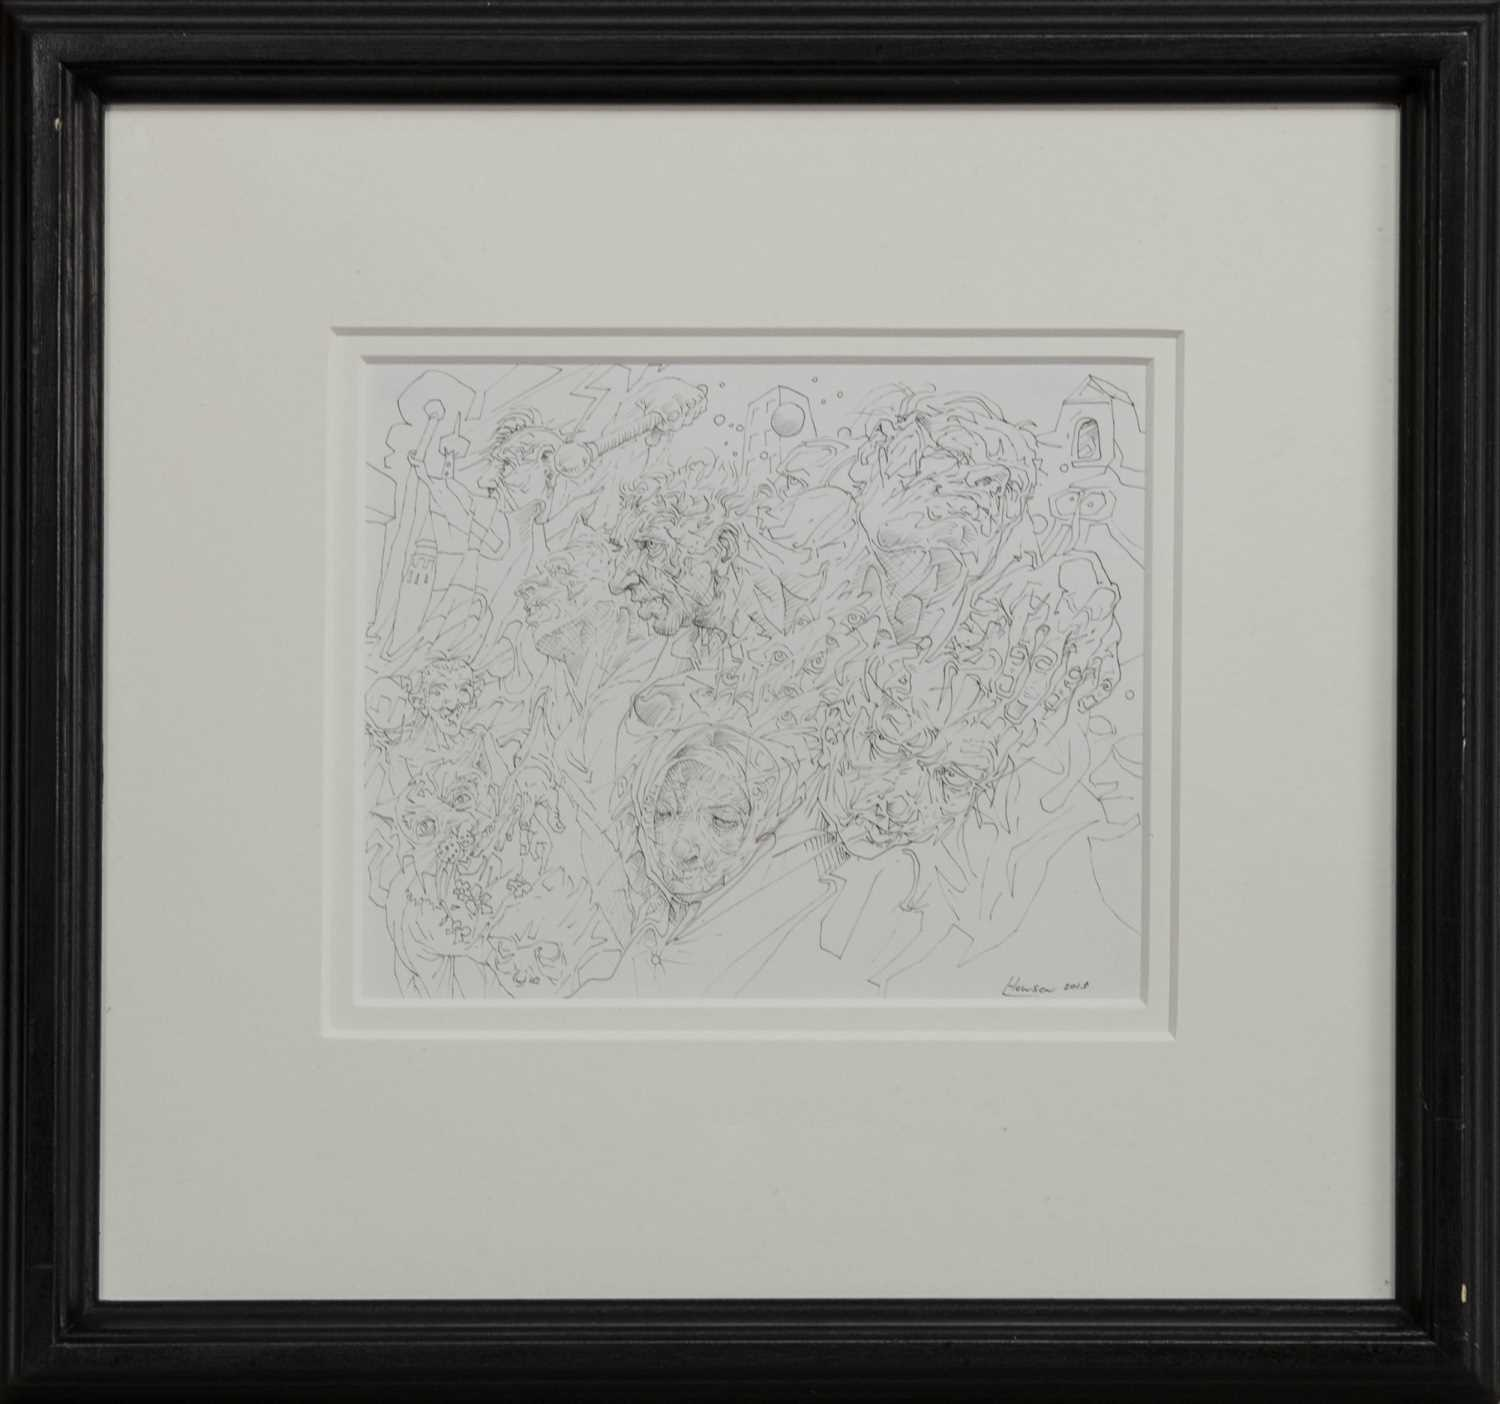 Lot 508 - UNTITLED NO. 32, 2015, AN INK BY PETER HOWSON